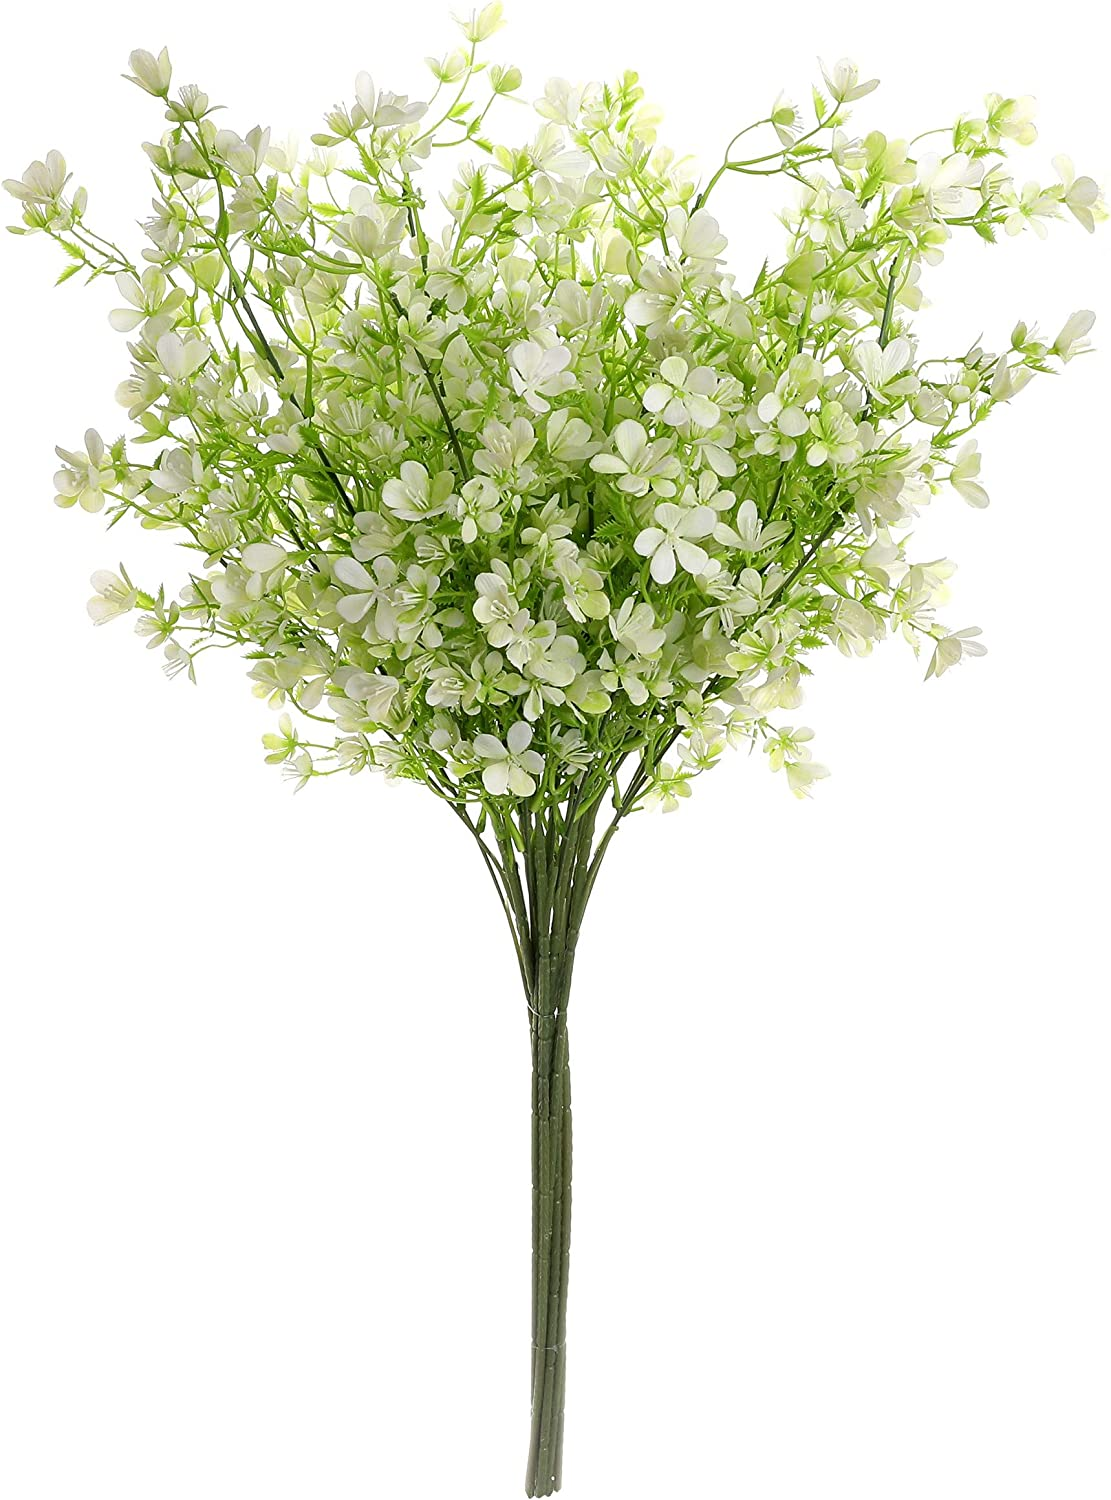 Grand Verde Myosotis 3 Long Branches Forget Me Not Scorpion Grasses Artificial Flowers Set of 5, Real Touch Bouquets for Gift, DIY, Garden, Patio, Balcony, Wedding, Party, Home Decor (White)